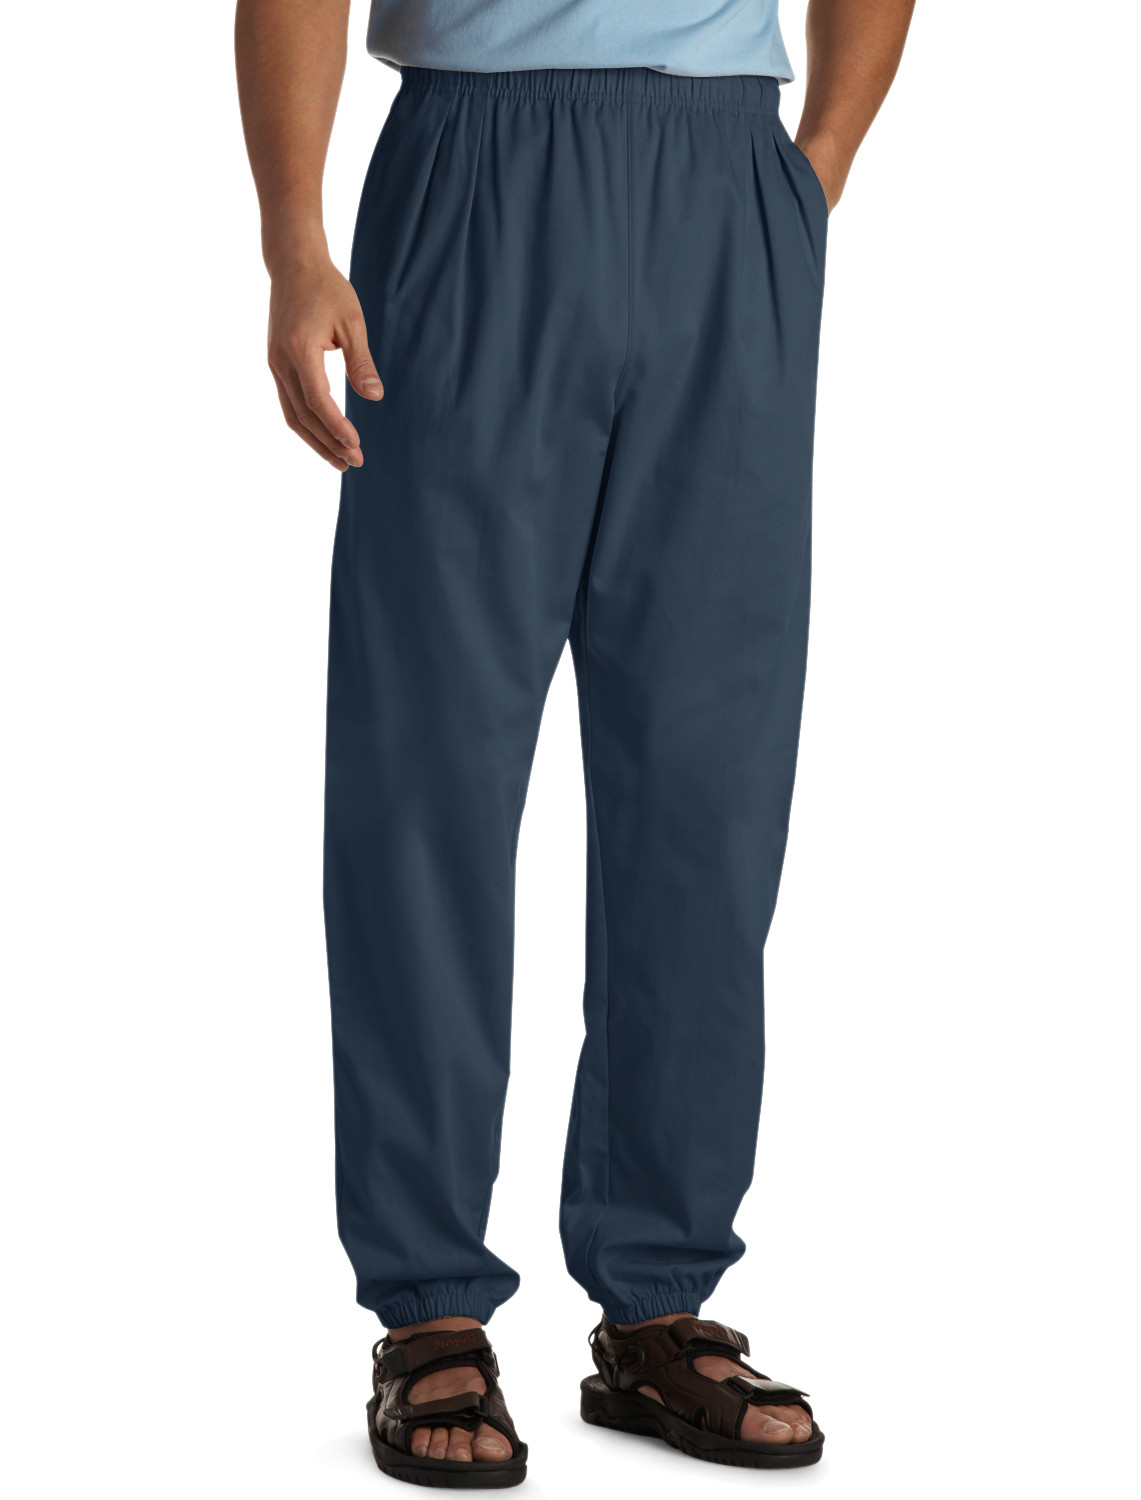 Tall Men's Clothing Sales & Specials at Destination XL, the largest Big and Tall Store! Find the best deal on Tall Men's Clothing, large size shoes, and more.